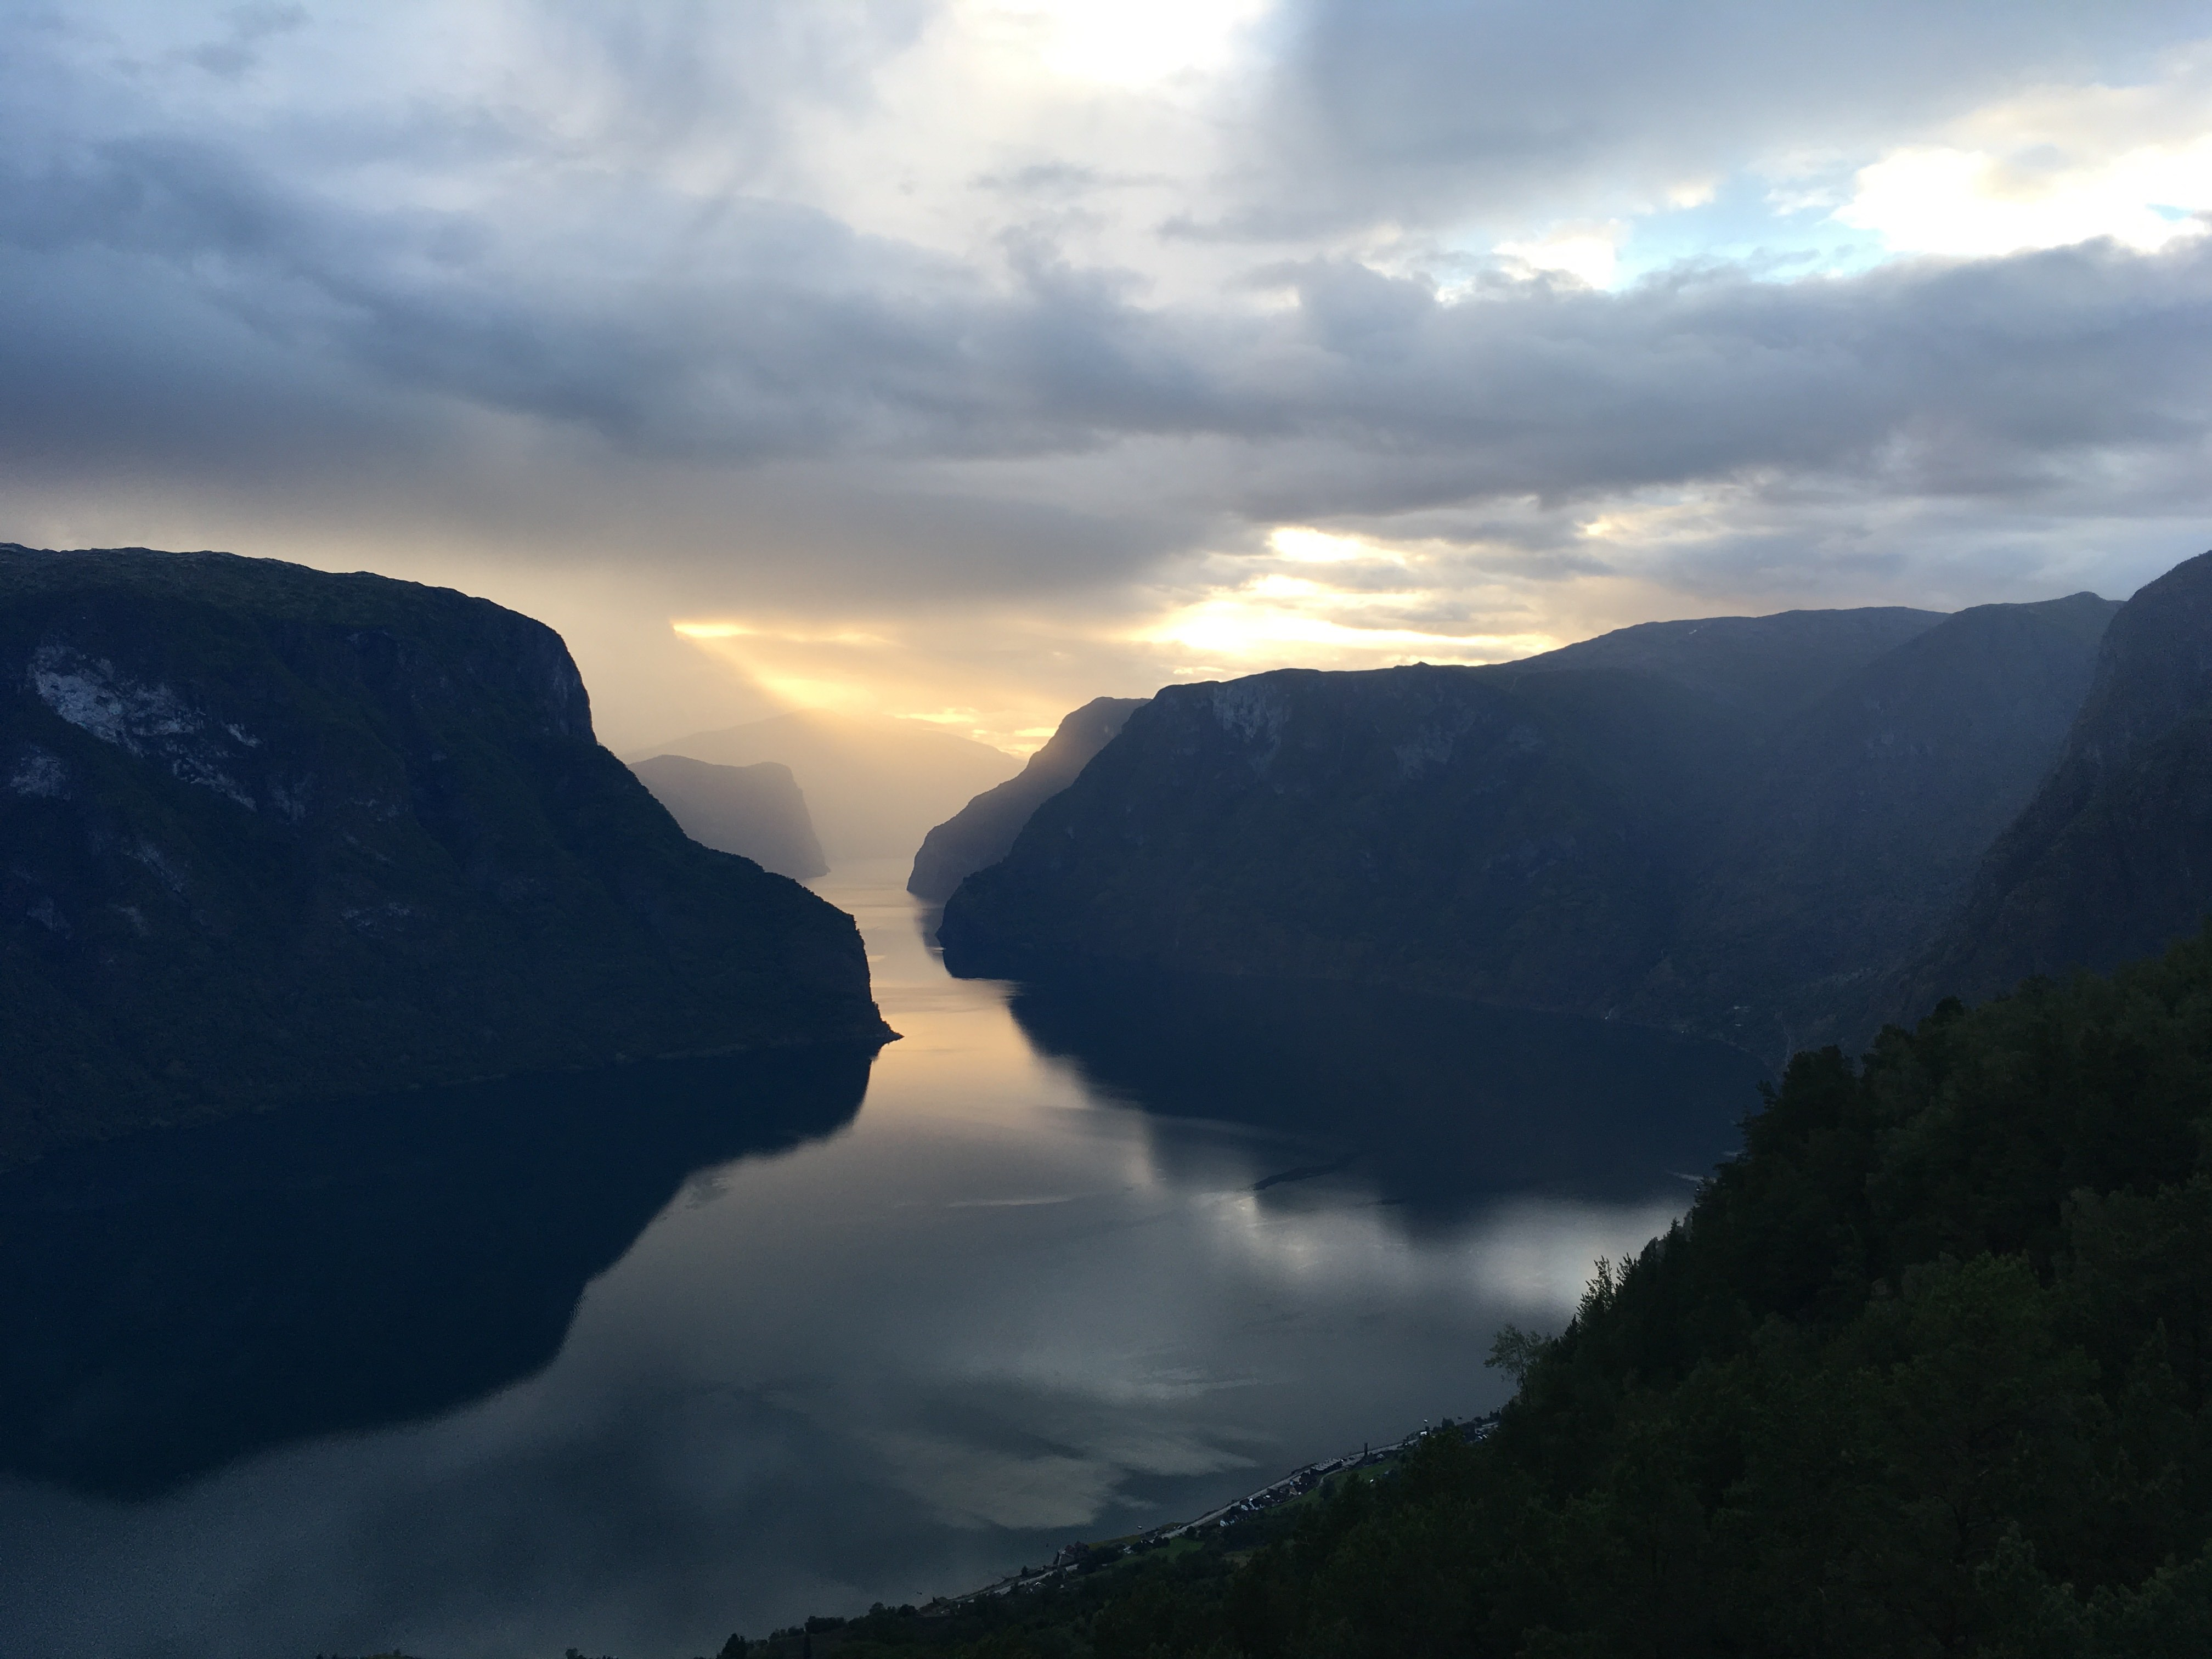 fjord view from Stegastein